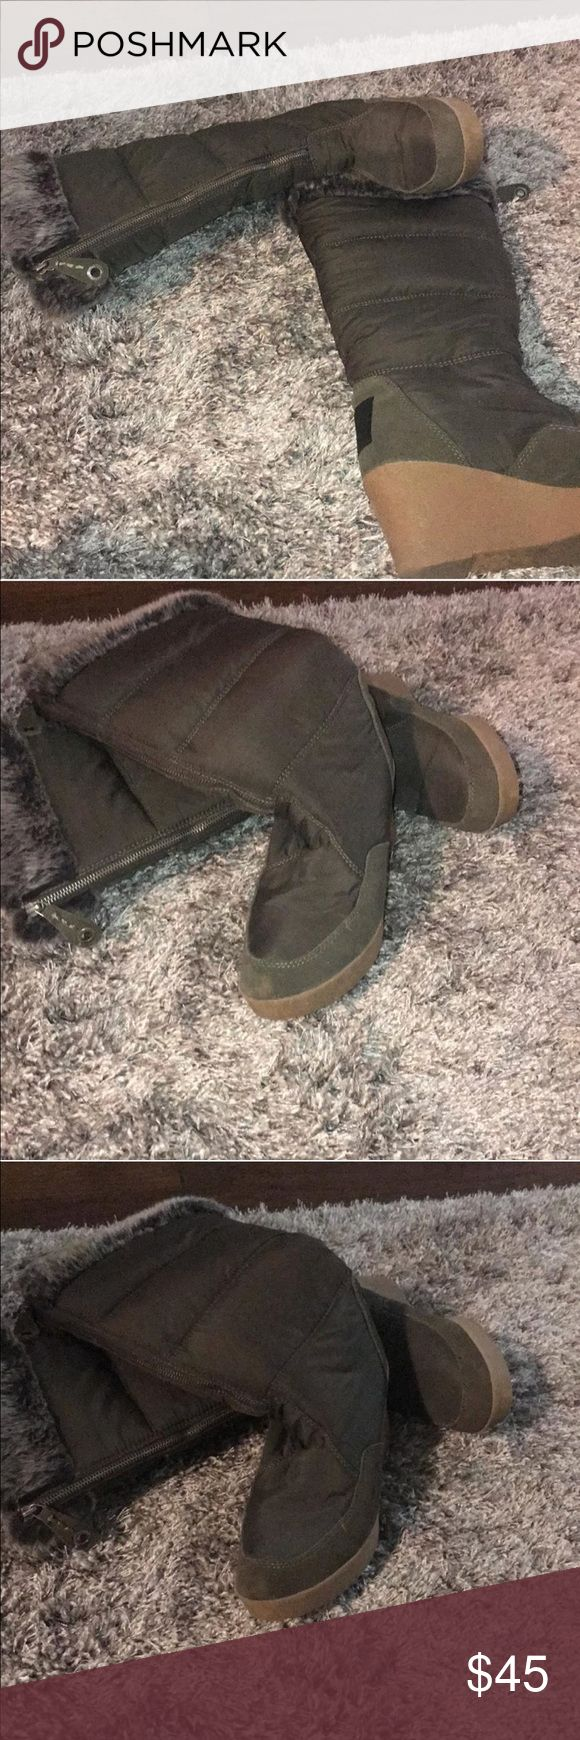 Juicy Couture Boots Used juicy Couture wedge boots Juicy Couture Shoes Winter & Rain Boots